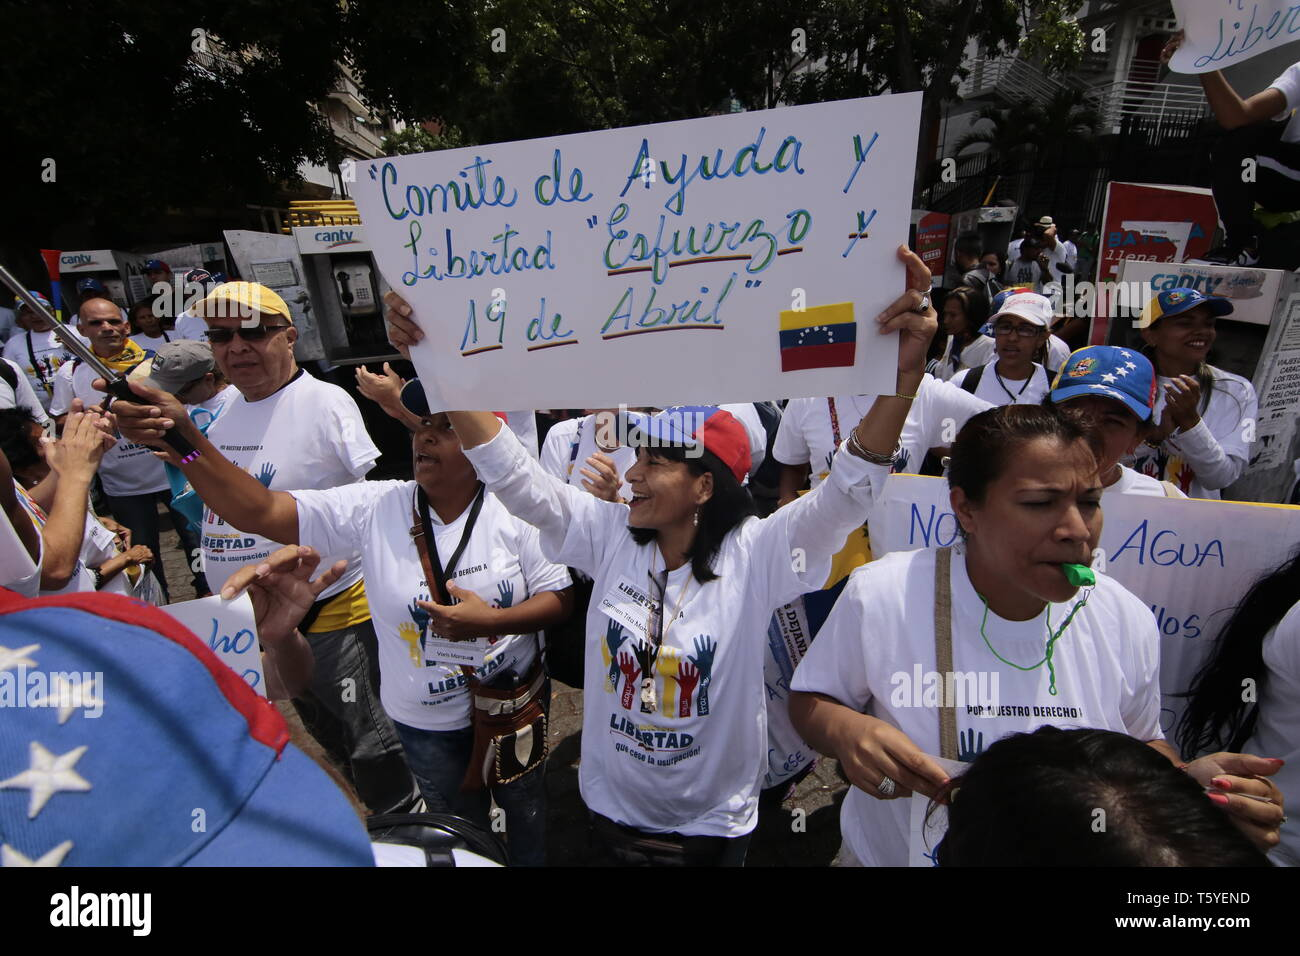 Caracas, Venezuela. 27th Apr, 2019. A woman is holding a banner with the inscription 'Comite de ayuda y libertad, esfuerzo y 19 de abril' at a public rally called by Venezuela's self-proclaimed president, Guaido. The Venezuelan opposition joins efforts to secure a major national march in Caracas on 1 May. Credit: Angel Hernandez/dpa/Alamy Live News - Stock Image